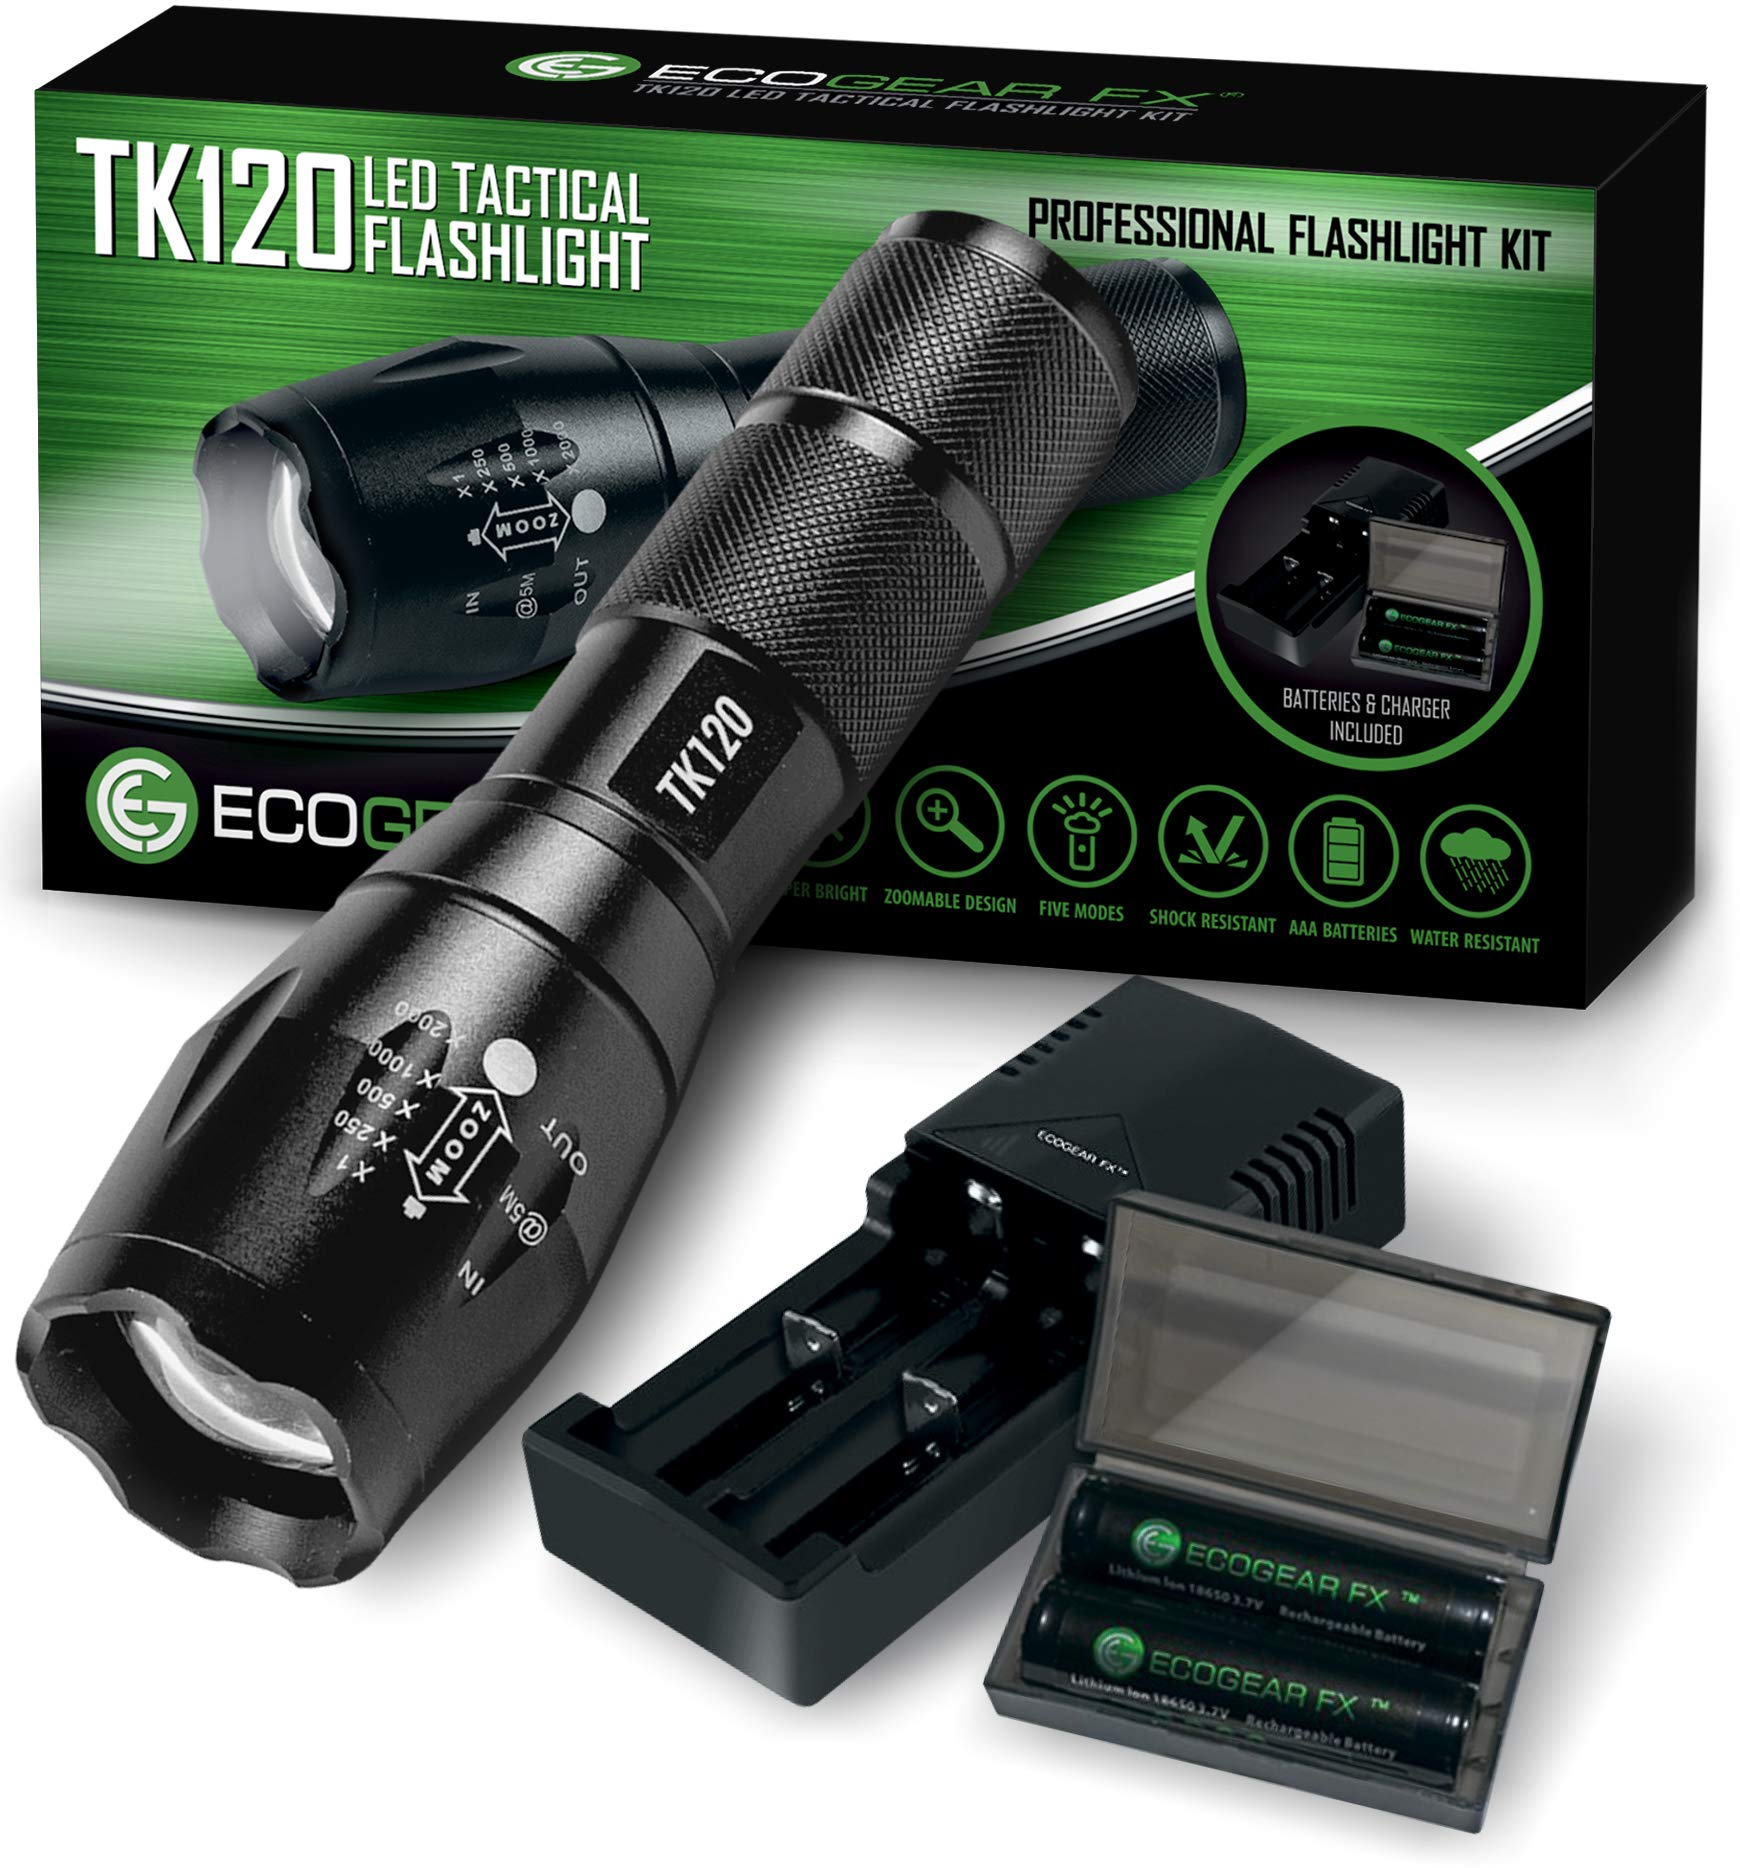 Complete LED Tactical Flashlight Kit - EcoGear FX TK120: Handheld Light with 5 Light Modes, Water Resistant, Zoomable - Includes Rechargeable Batteries and Battery Charger - Perfect Gift for Men by EcoGear FX